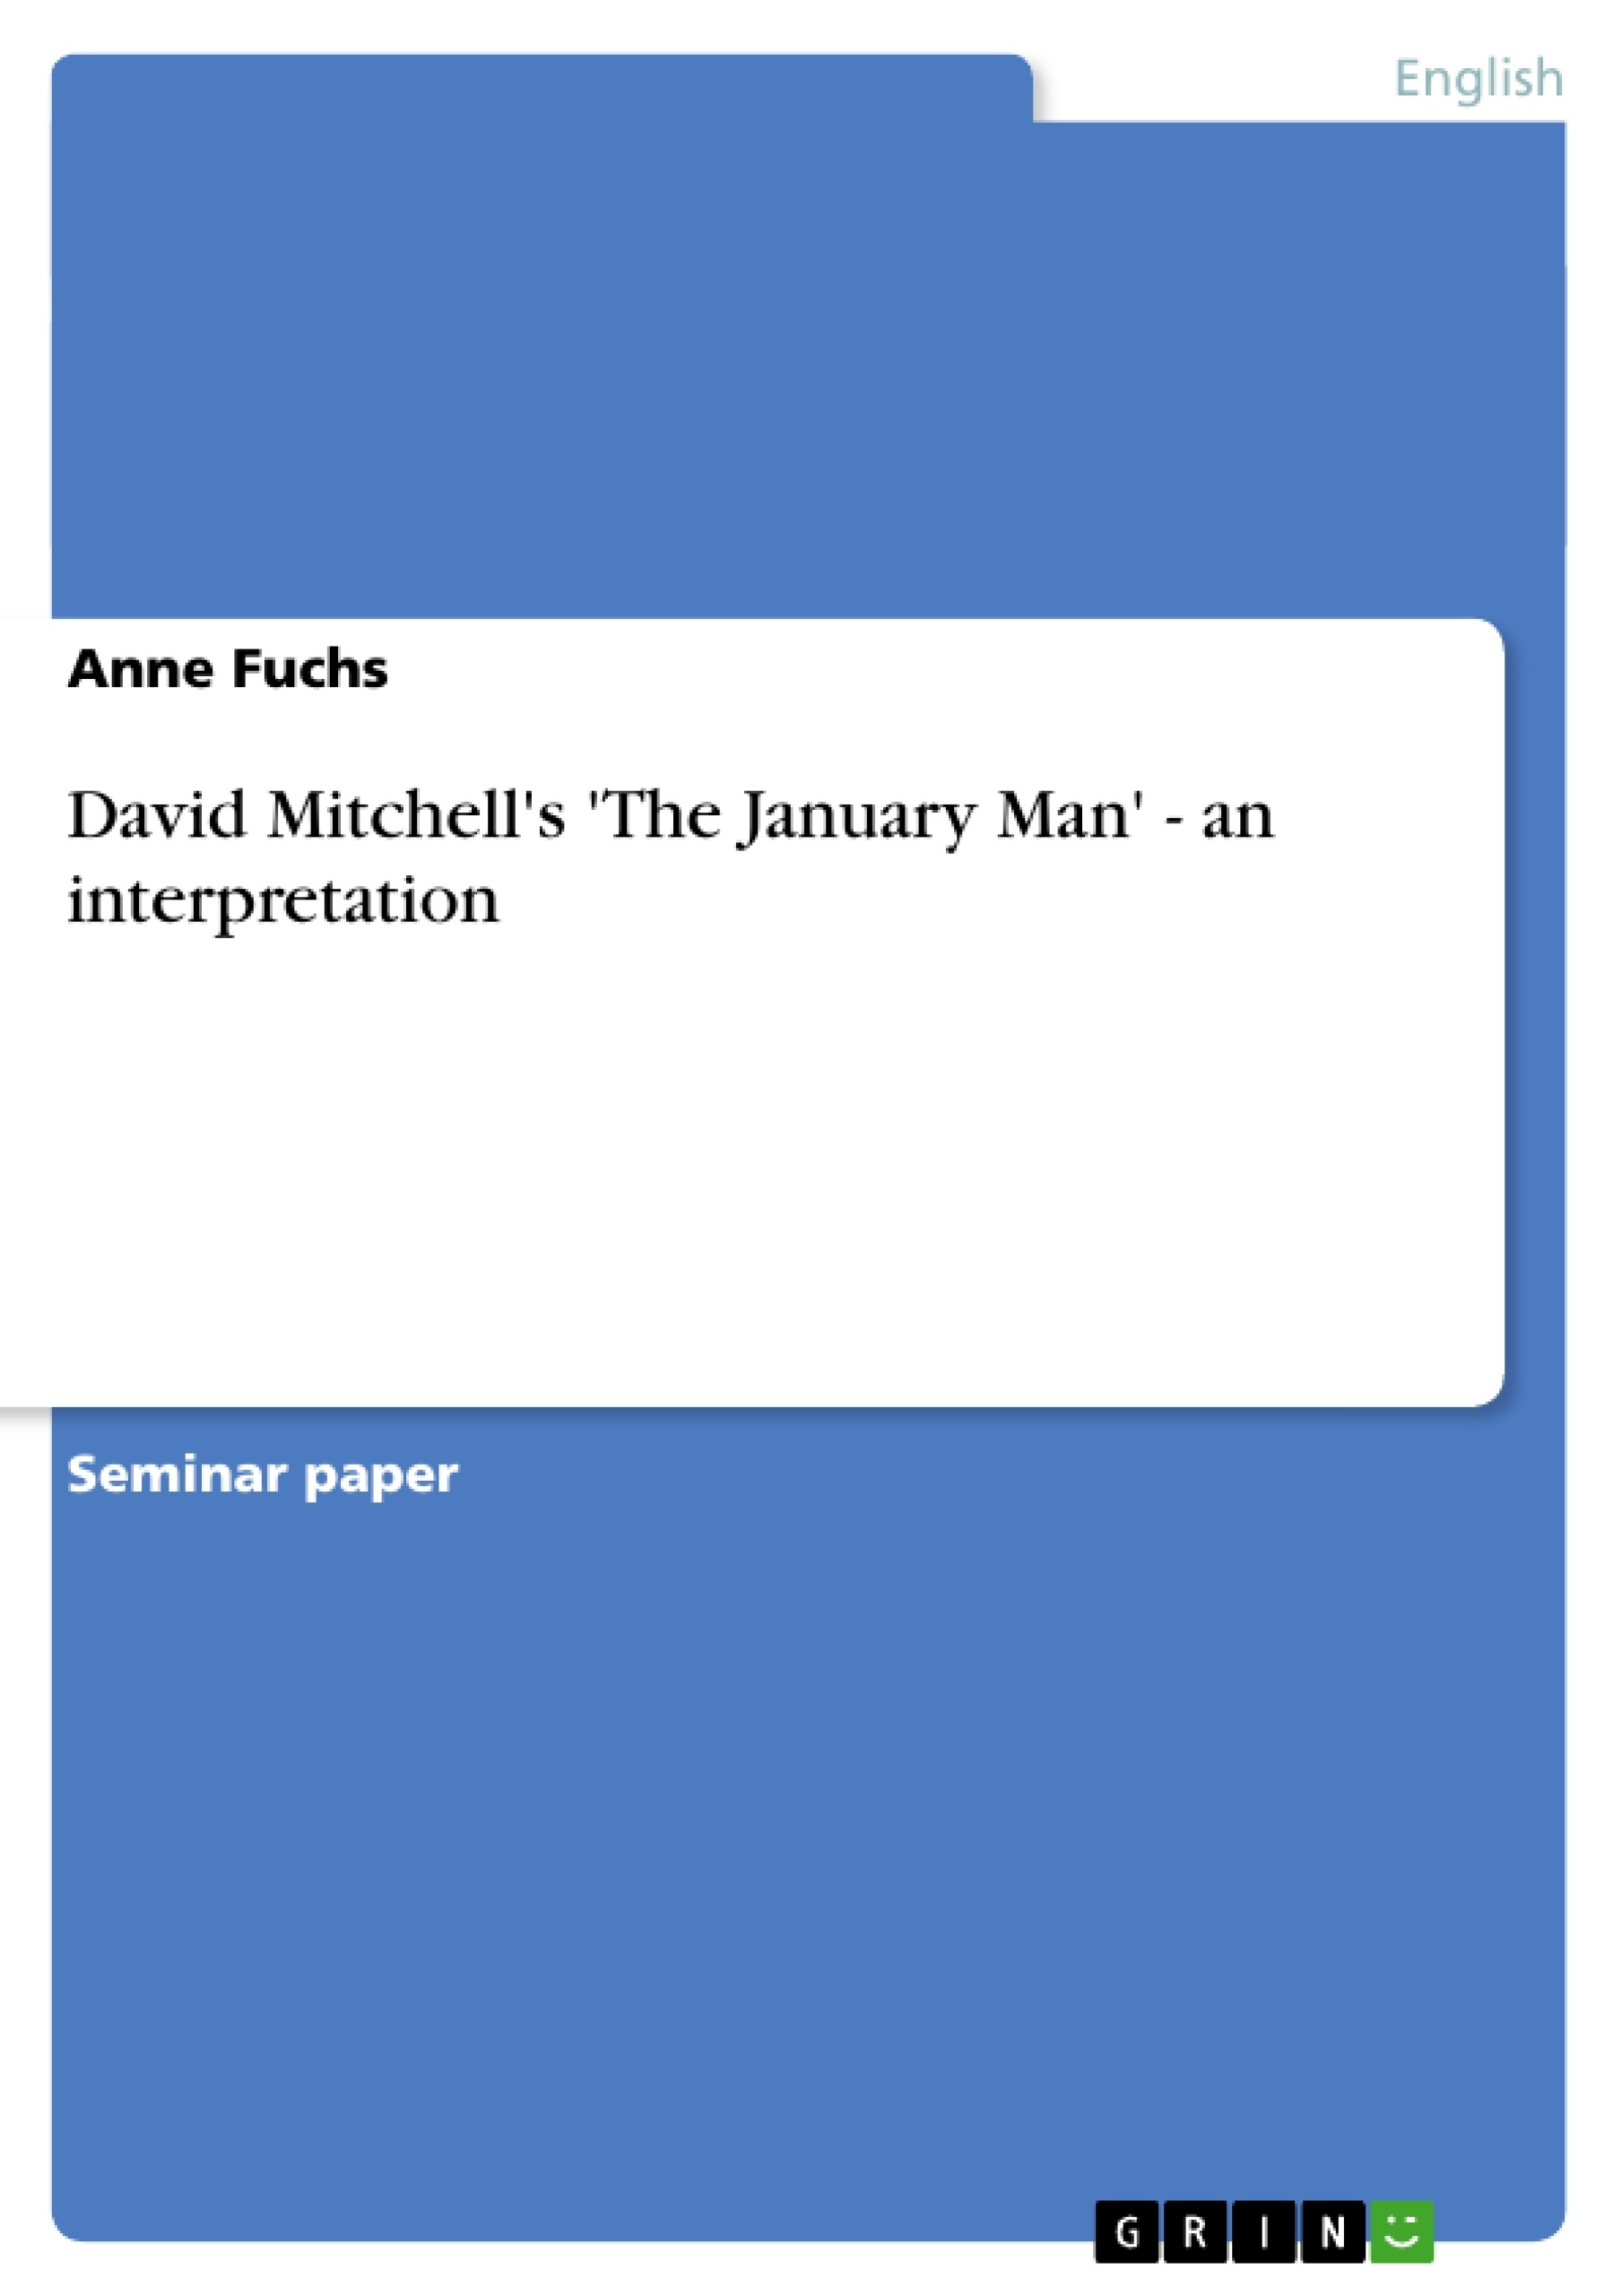 Title: David Mitchell's 'The January Man' - an interpretation